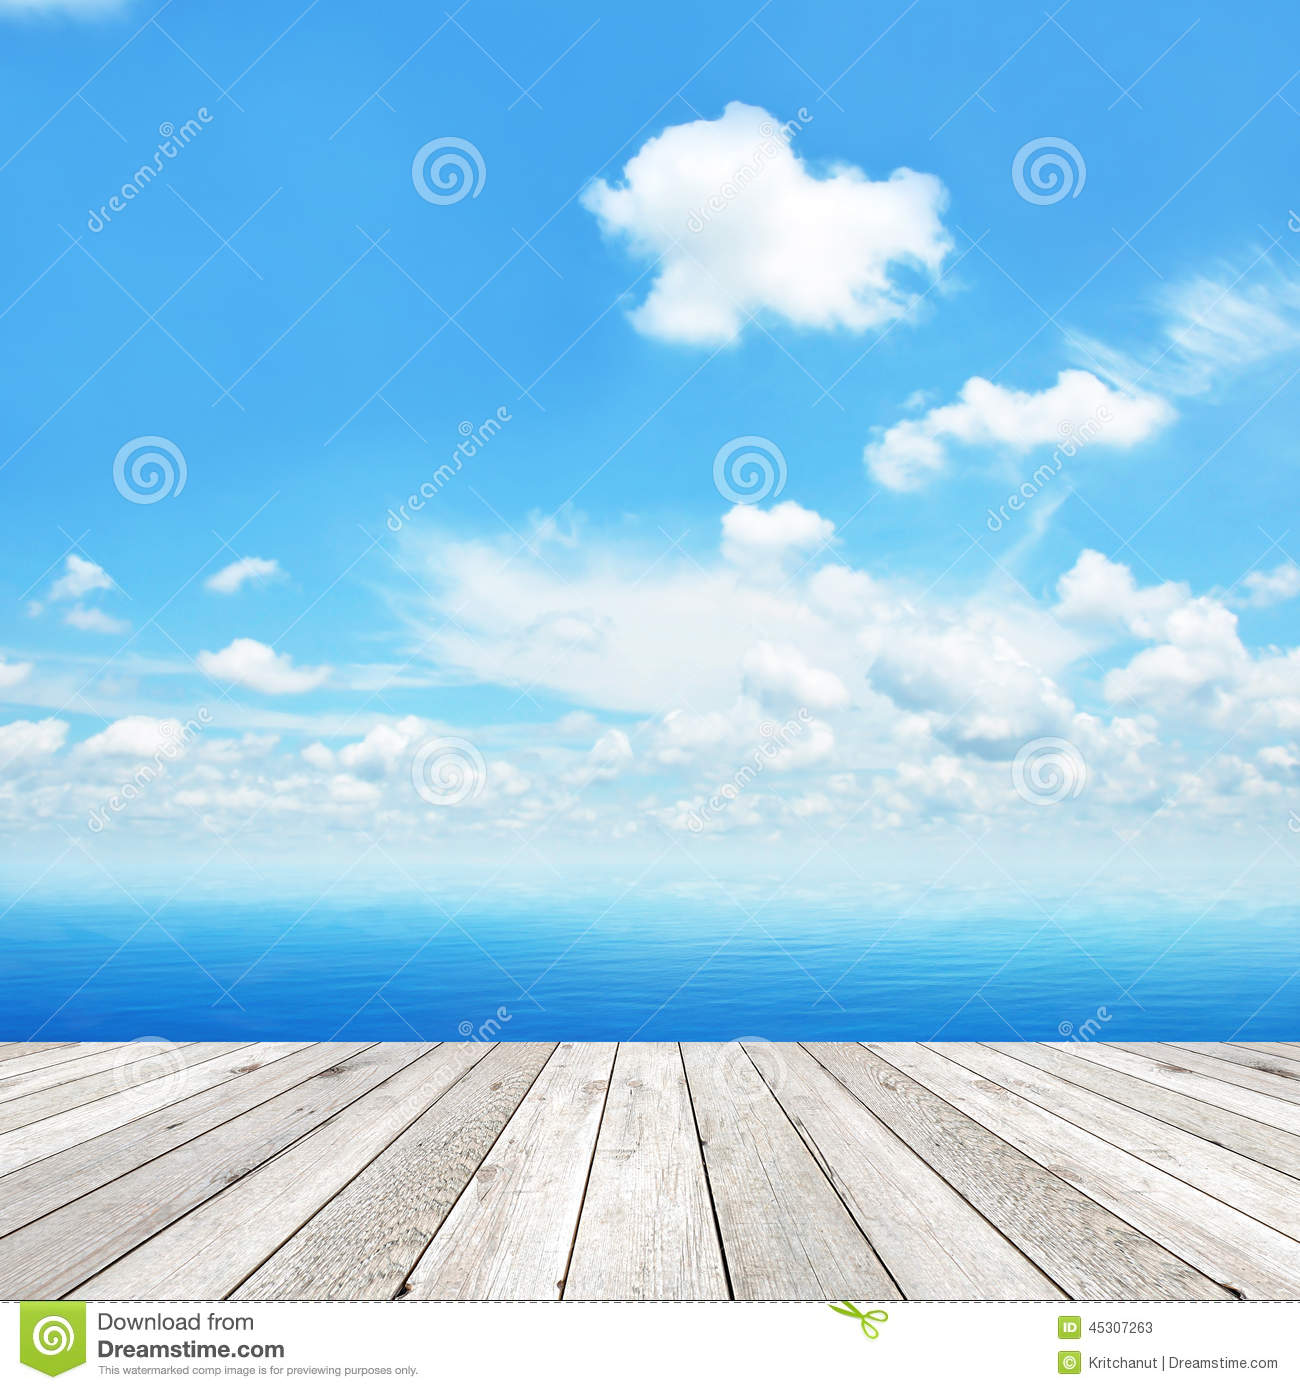 Wood Floor On Beach Sea And Blue Sky For Background Stock: Wood Deck On Blue Sea Royalty-Free Stock Photo